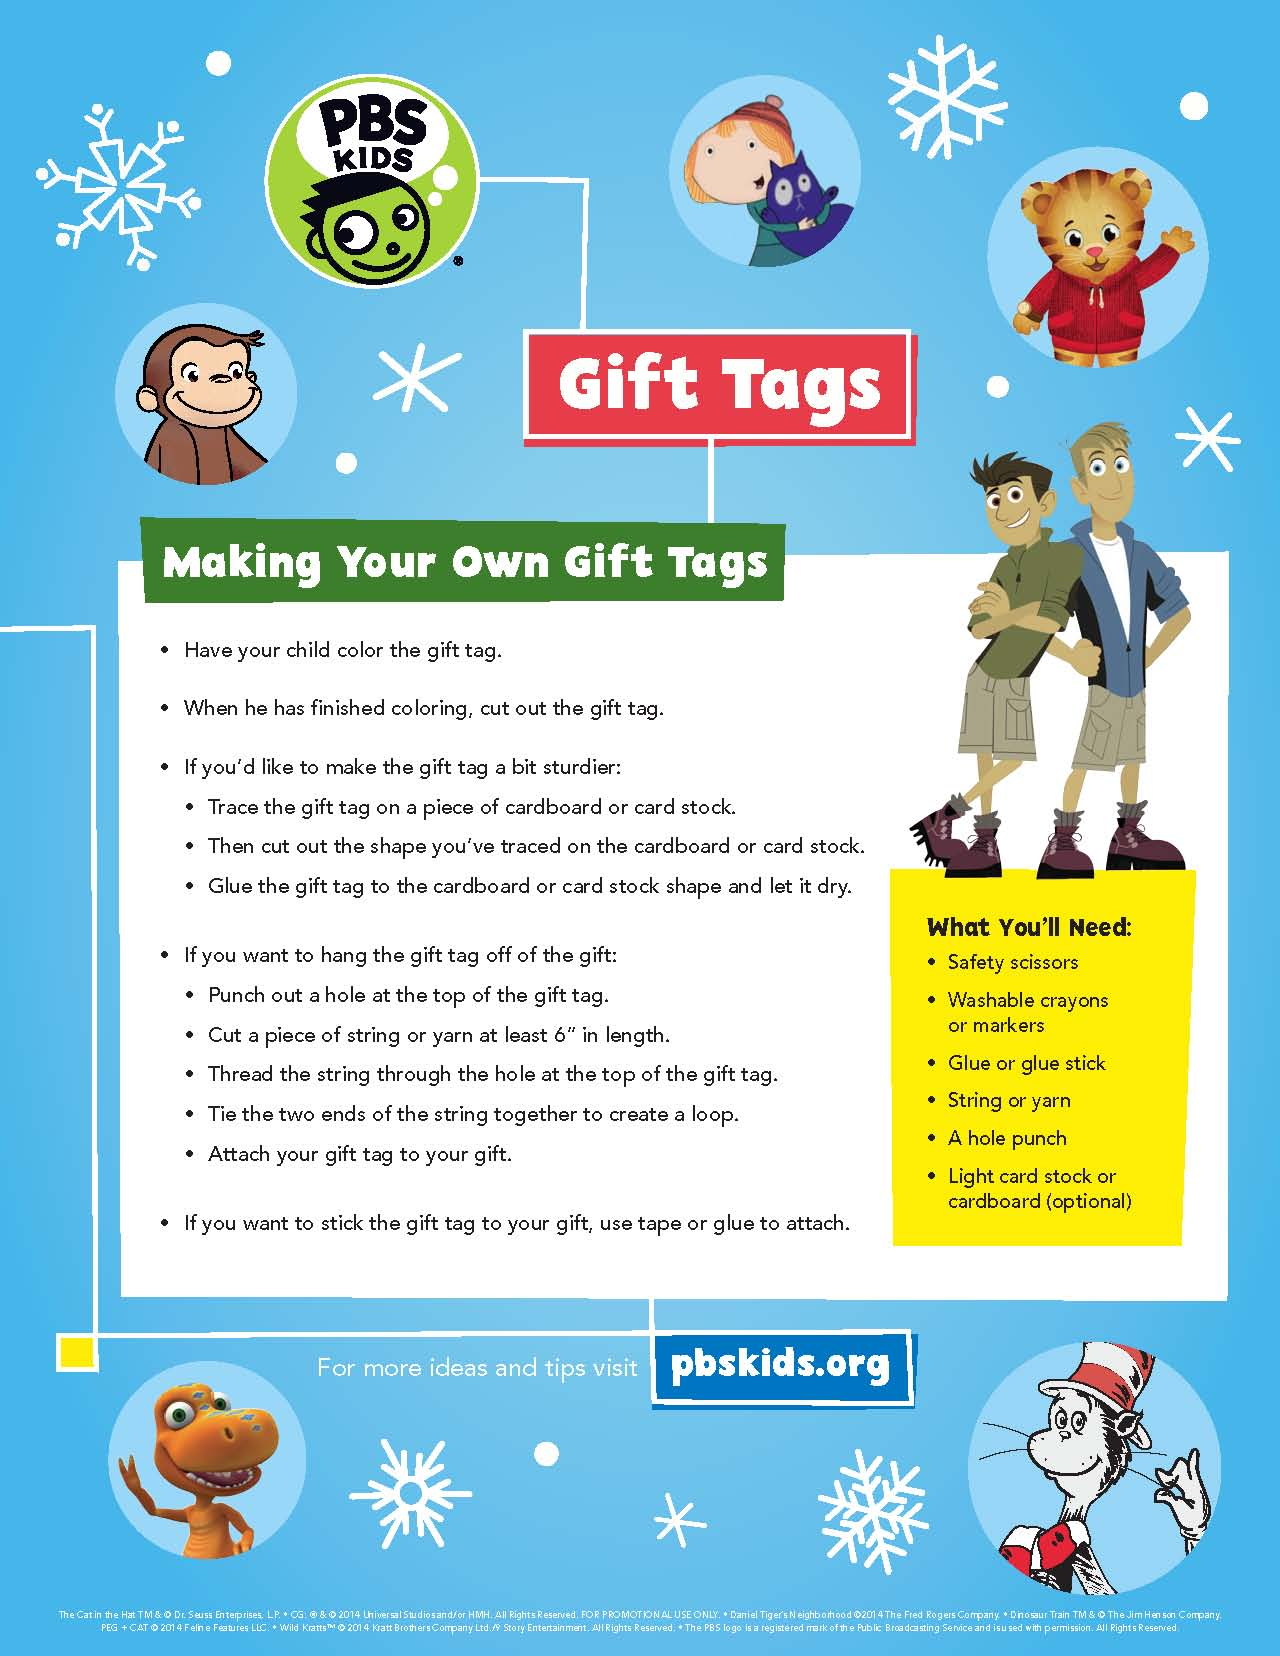 pbs kids gift tags 2_Page_1